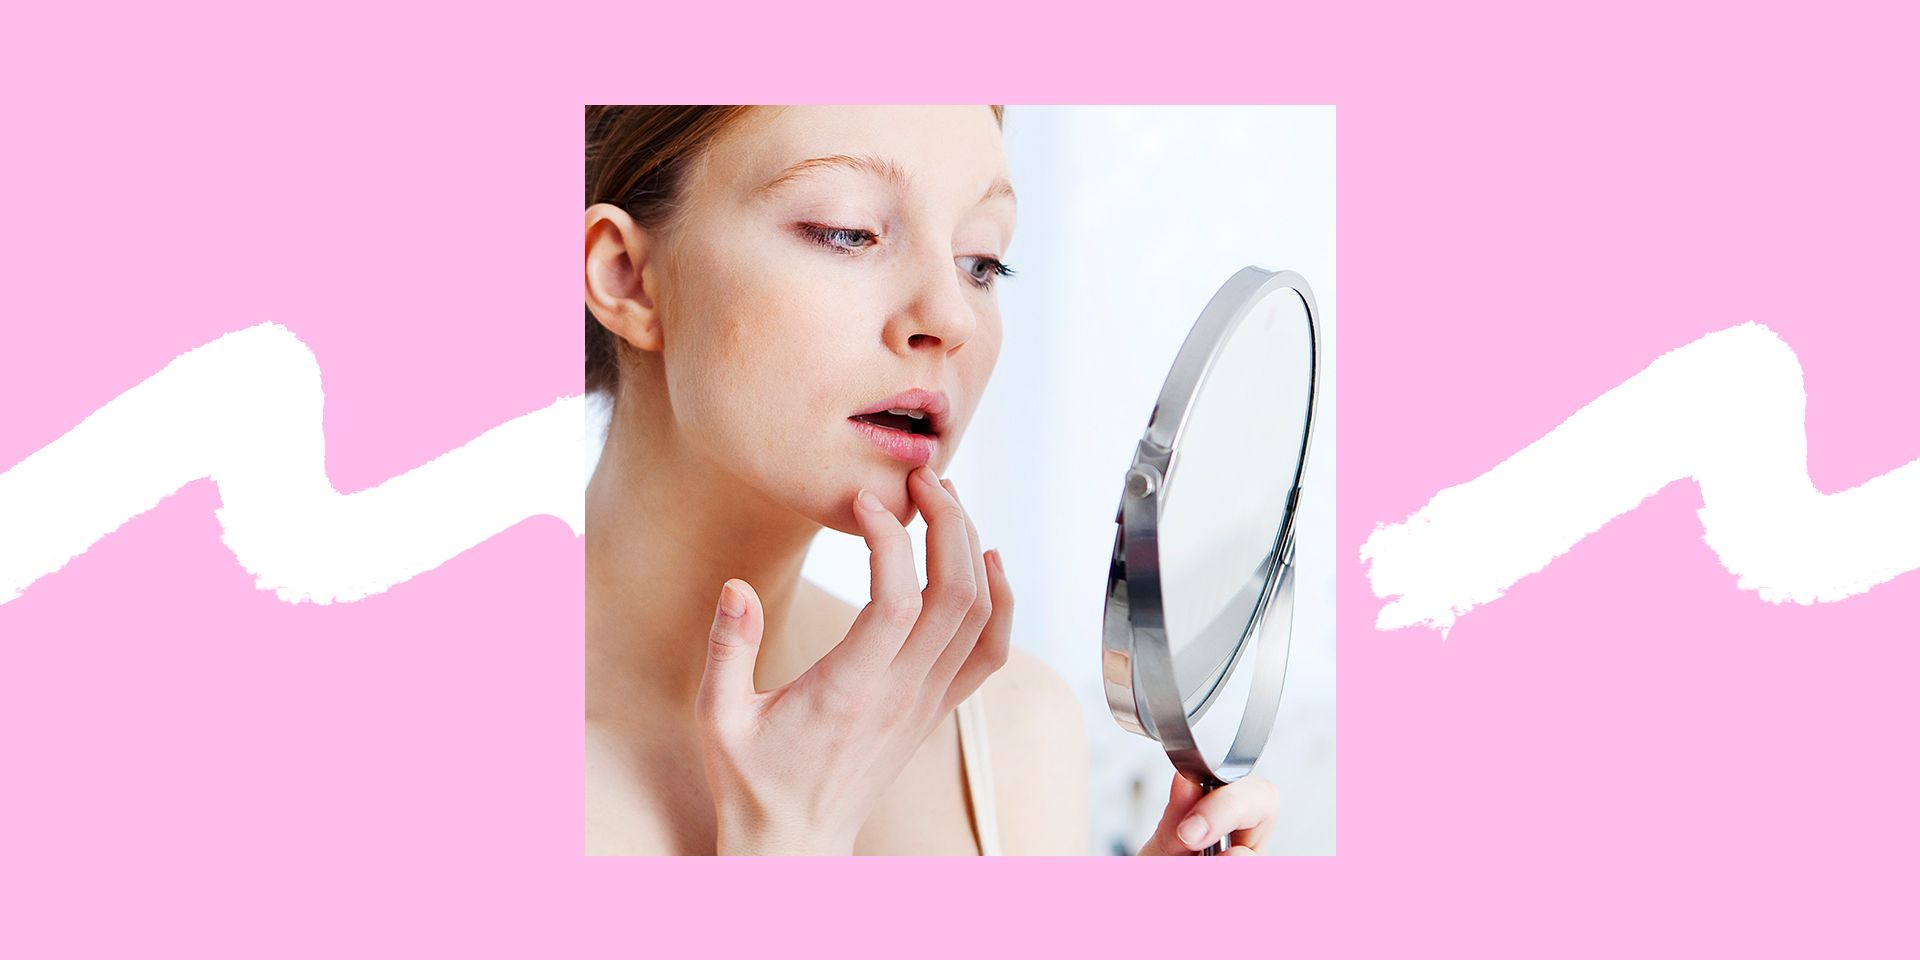 How to Get Rid of a Lip Pimple Fast